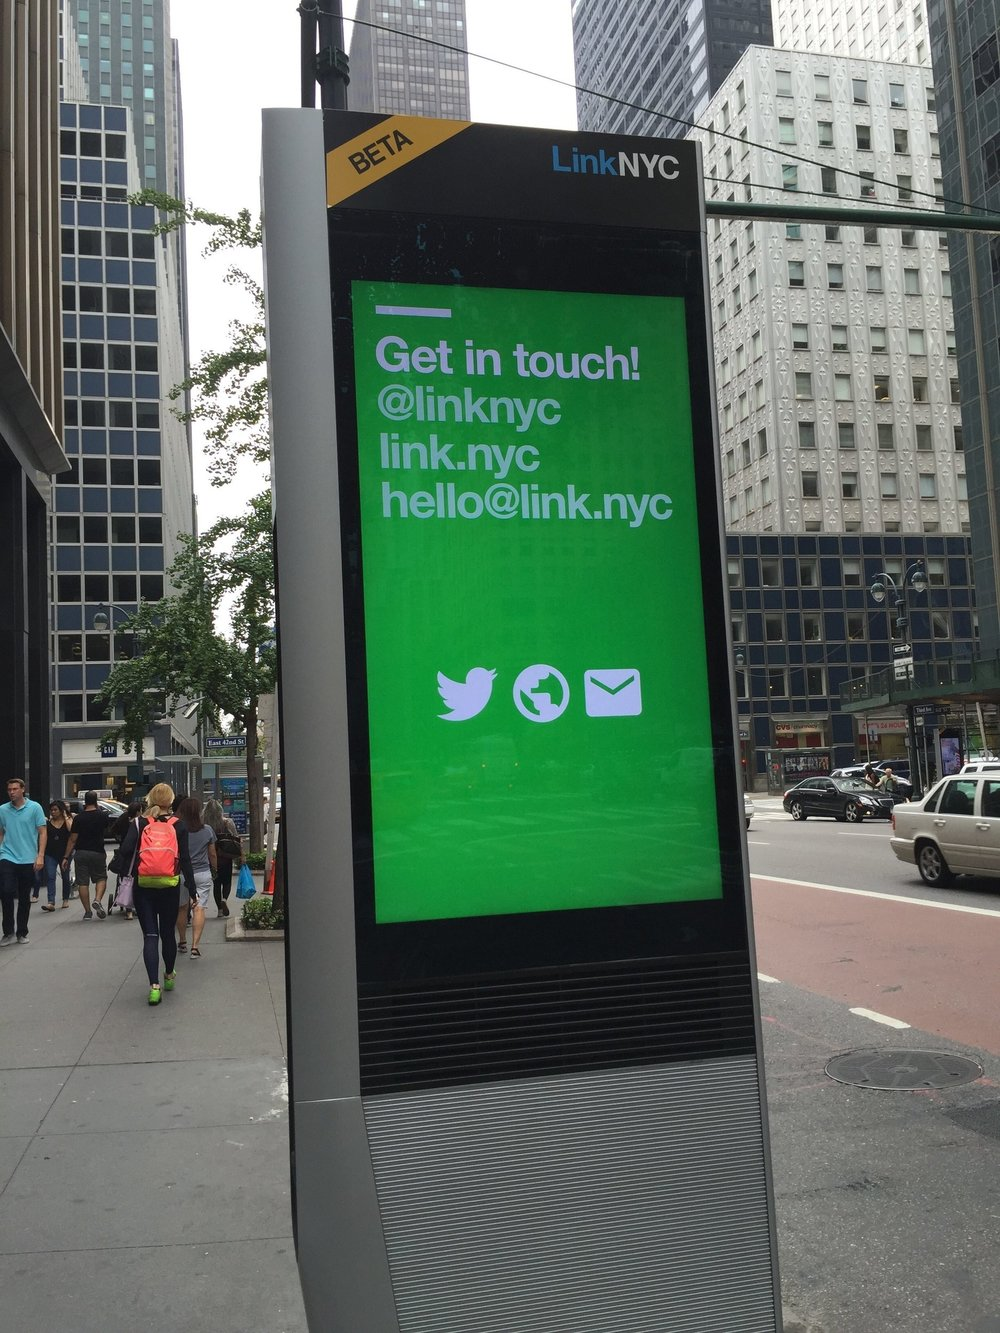 LinkNYC -  LinkNYC is a first-of-its-kind communications network that will replace over 7,500 pay phones across the five boroughs with new structures called Links. Each Link will provide super fast, free public Wi-Fi, phone calls, device charging and a tablet for access to city services, maps and directions.